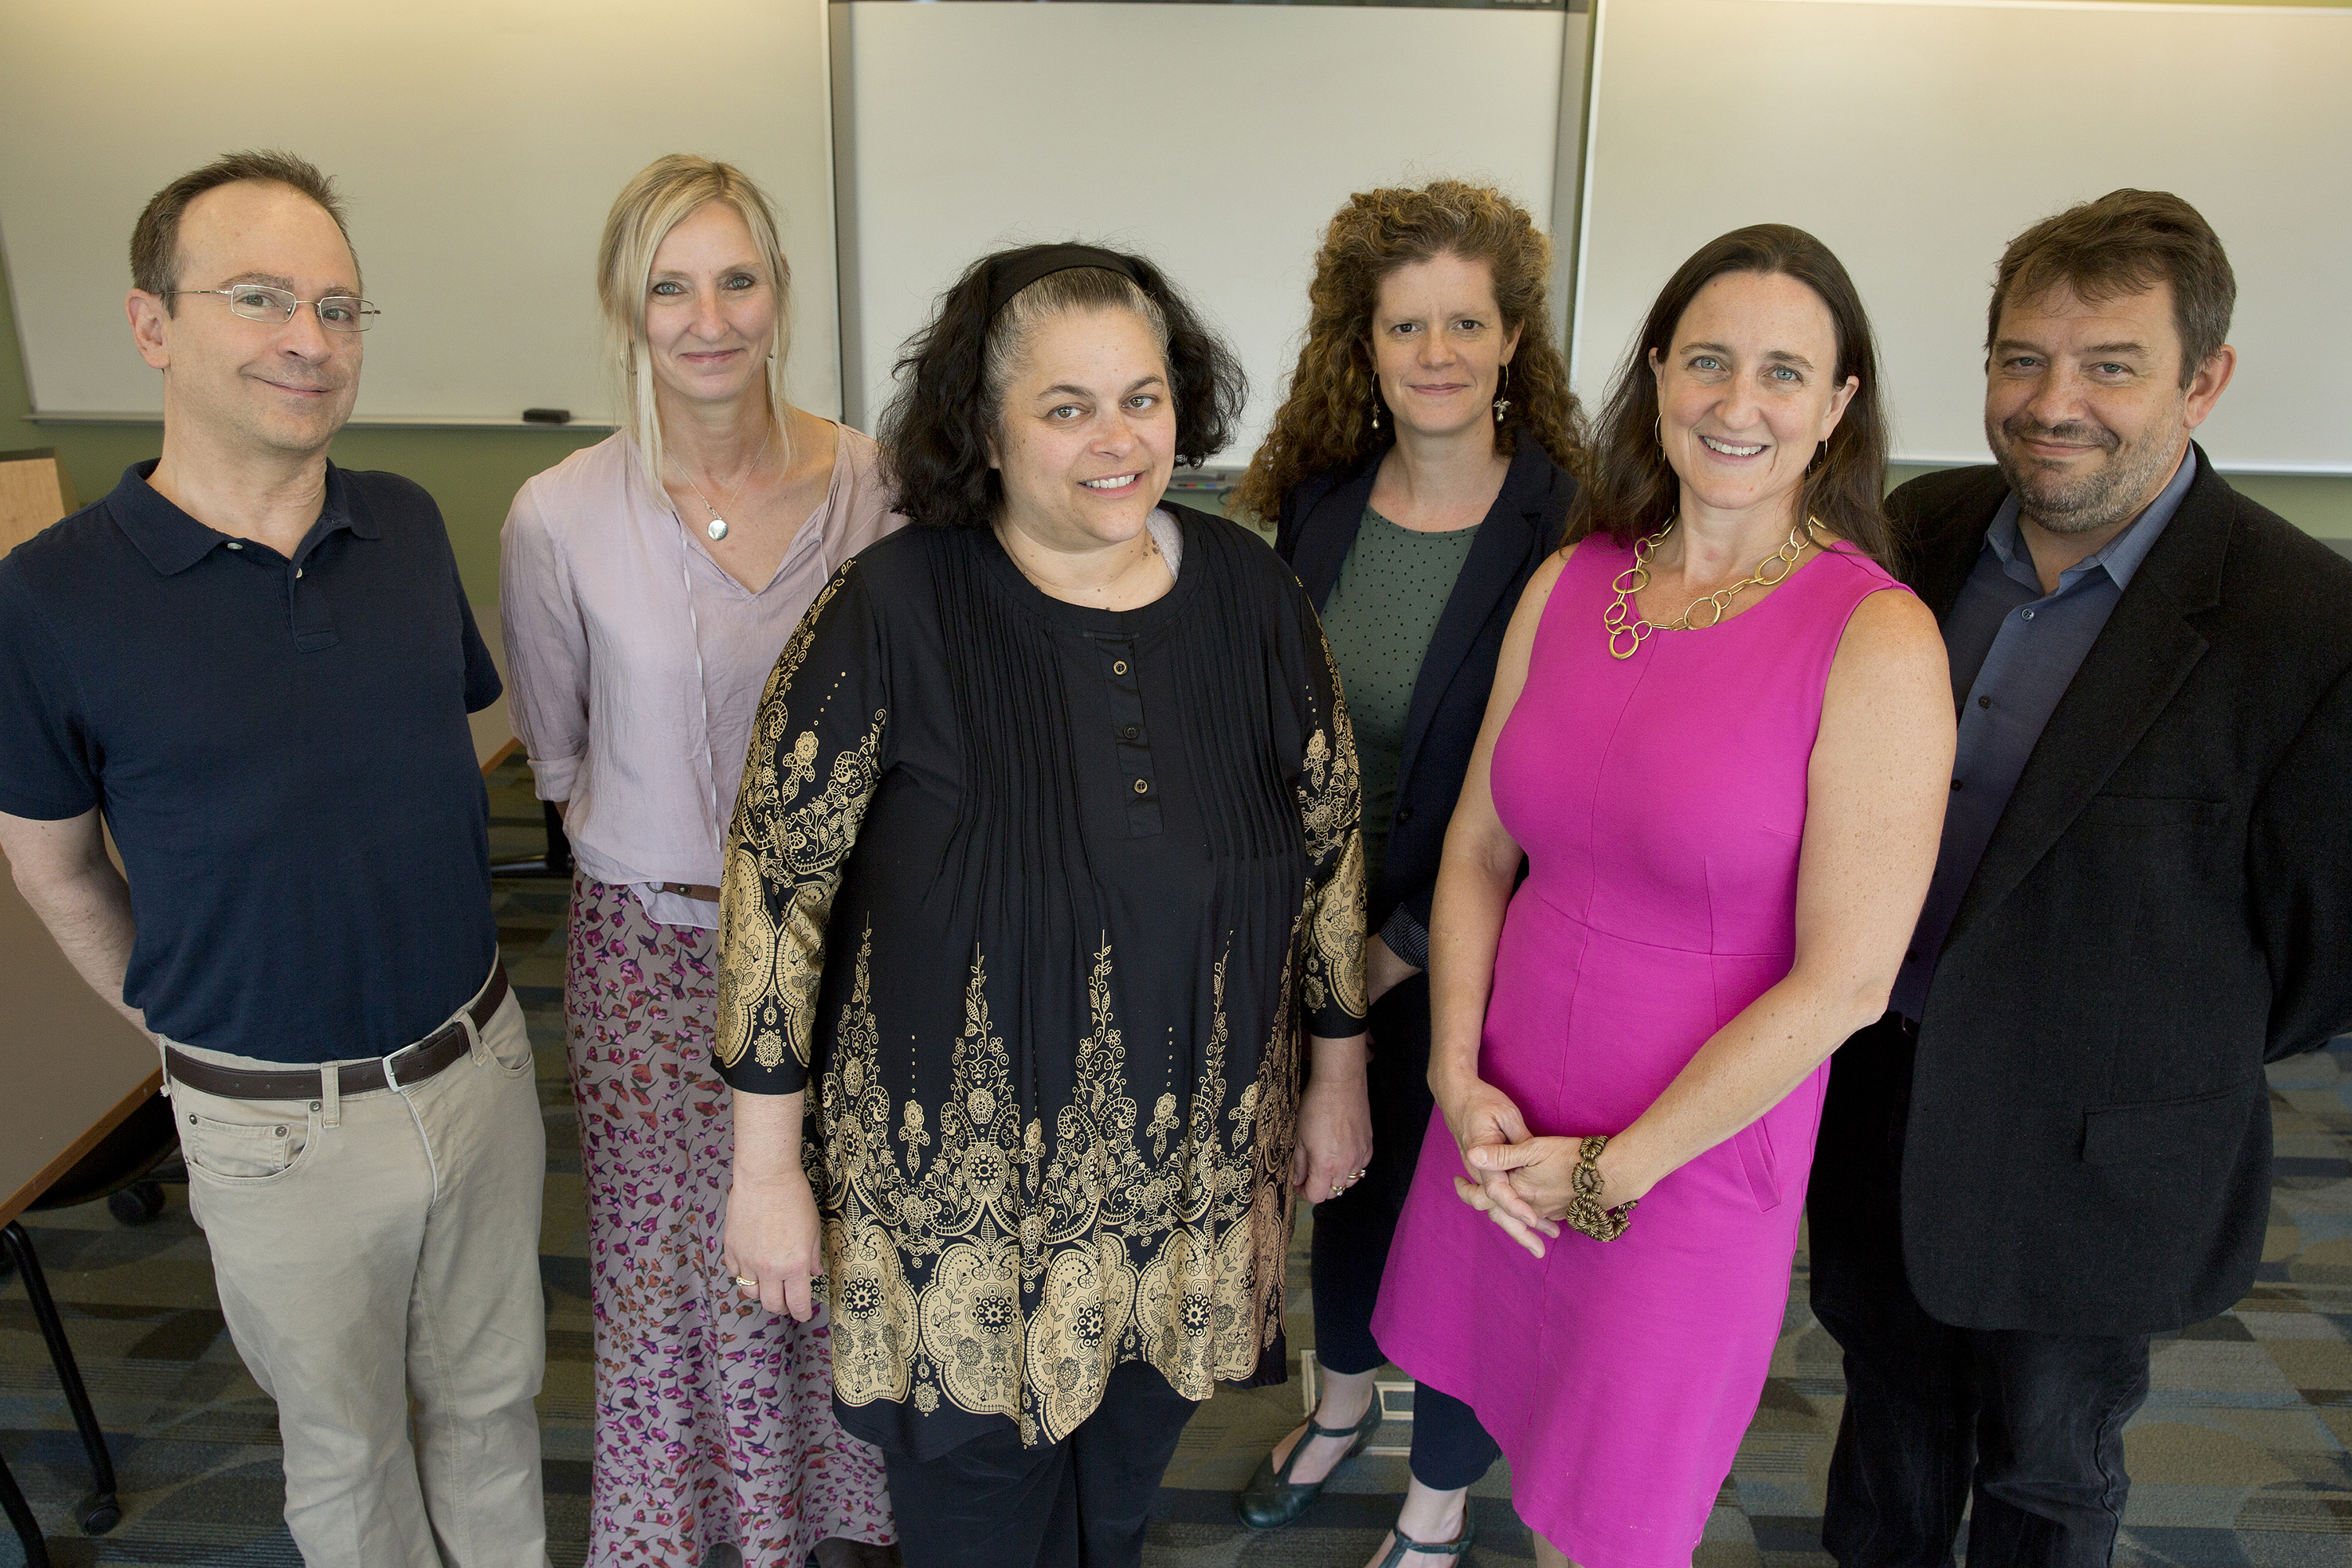 From left, professor of linguistics William Snyder; professor of psychological sciences R. Holly Fitch; professor of educational psychology Betsy McCoach; associate professor of speech, language, and hearing sciences Emily Myers; associate professor of psychological sciences Inge-Marie Eigsti; and professor of psychological sciences James Magnuson. (Bri Diaz/UConn Photo)